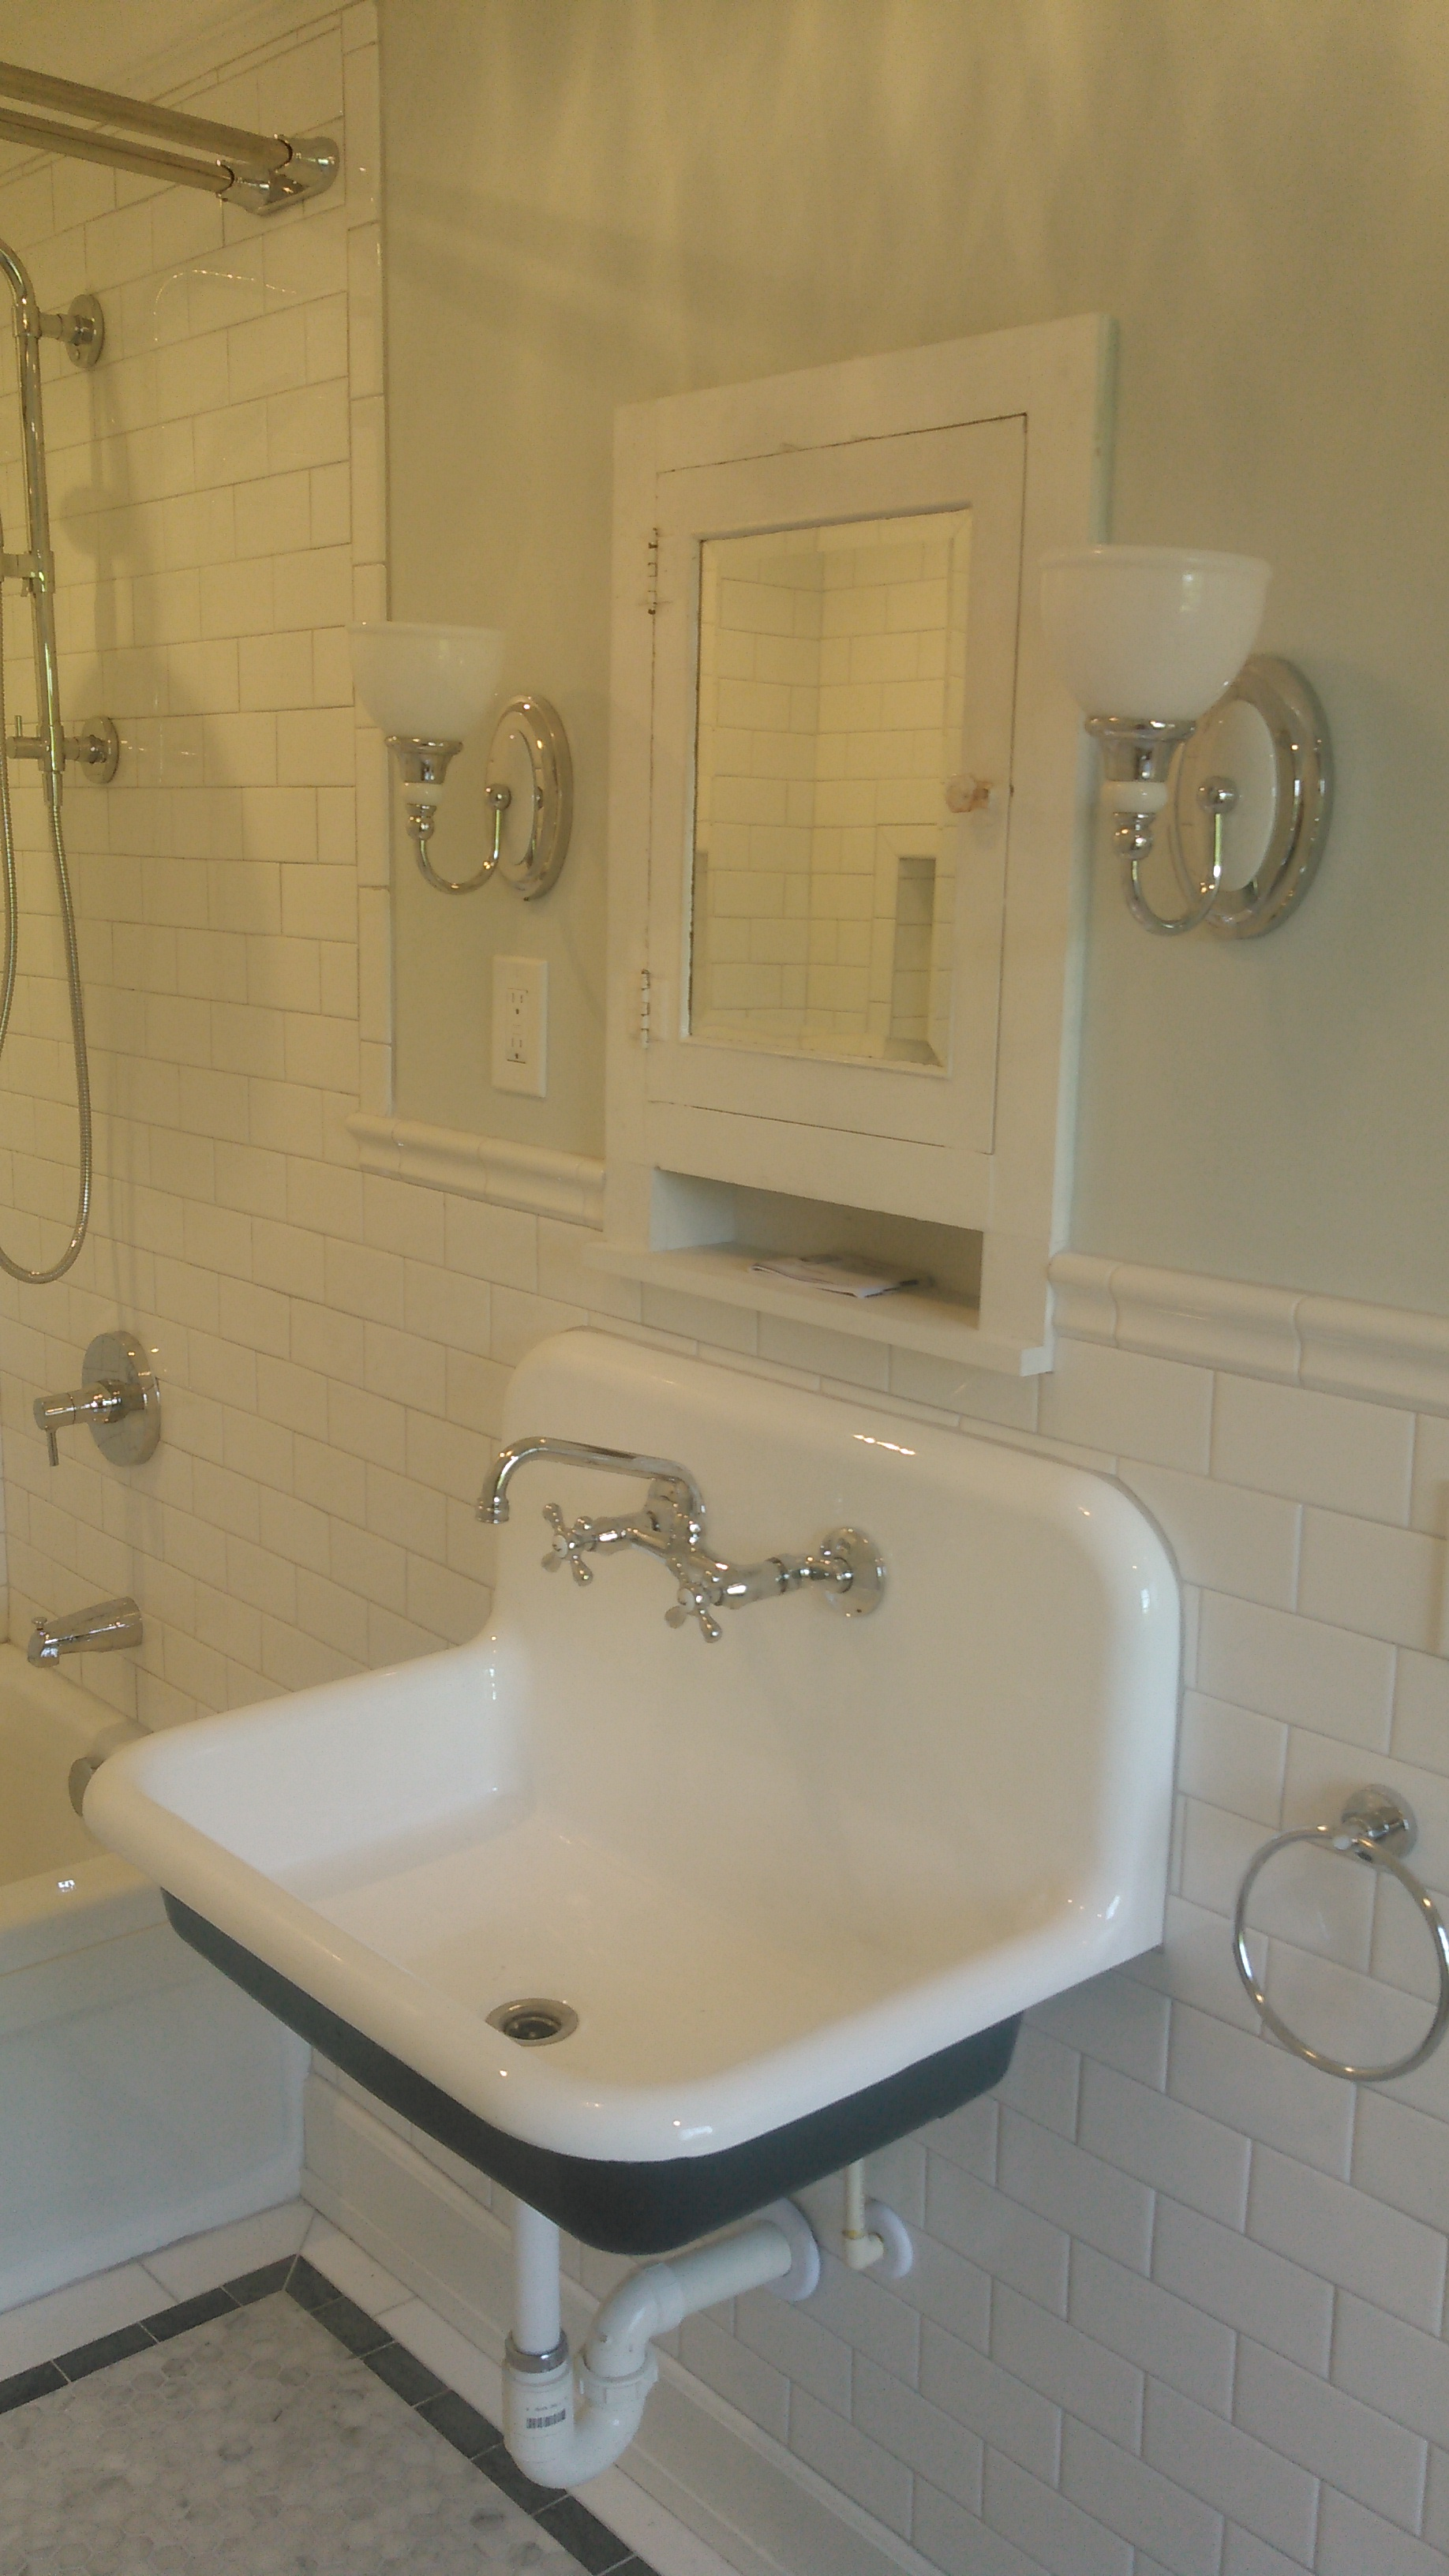 How Much Value Can You Get From A Remodeled Bathroom Fairfield - How much is a bathroom sink